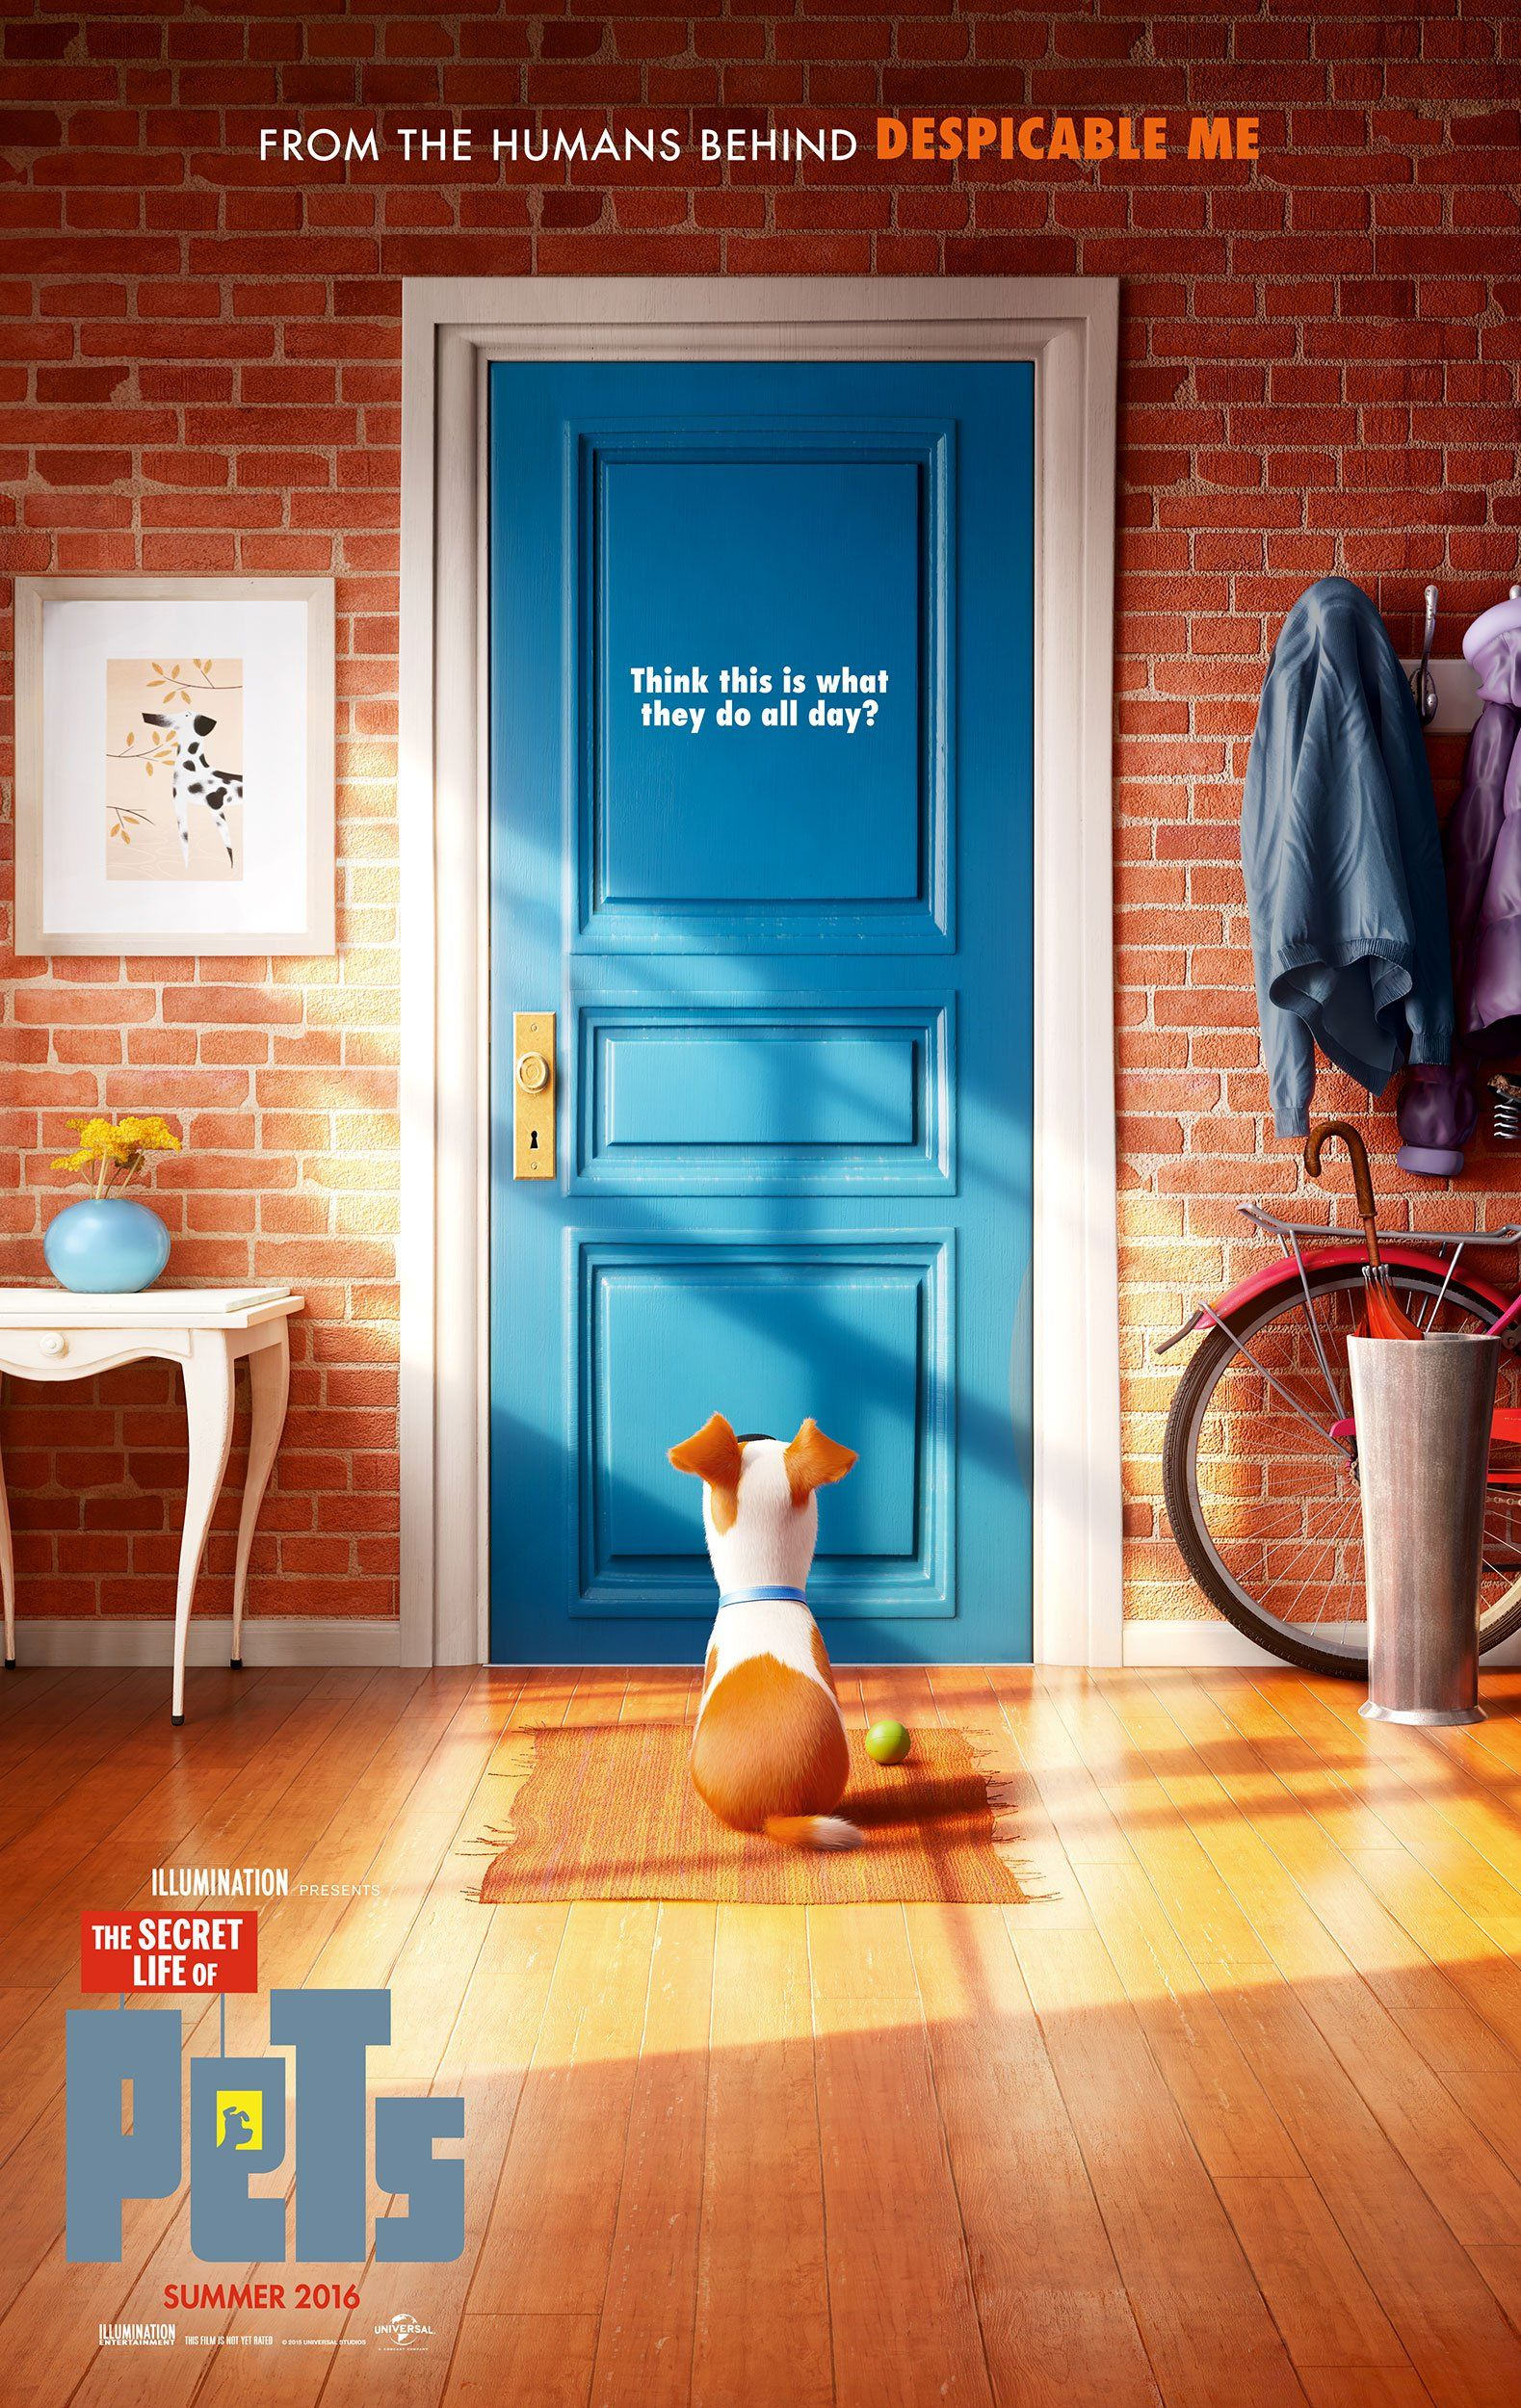 10 Animations To Watch Out For In 2016 Pets Movie Secret Life Of Pets Summer Movie